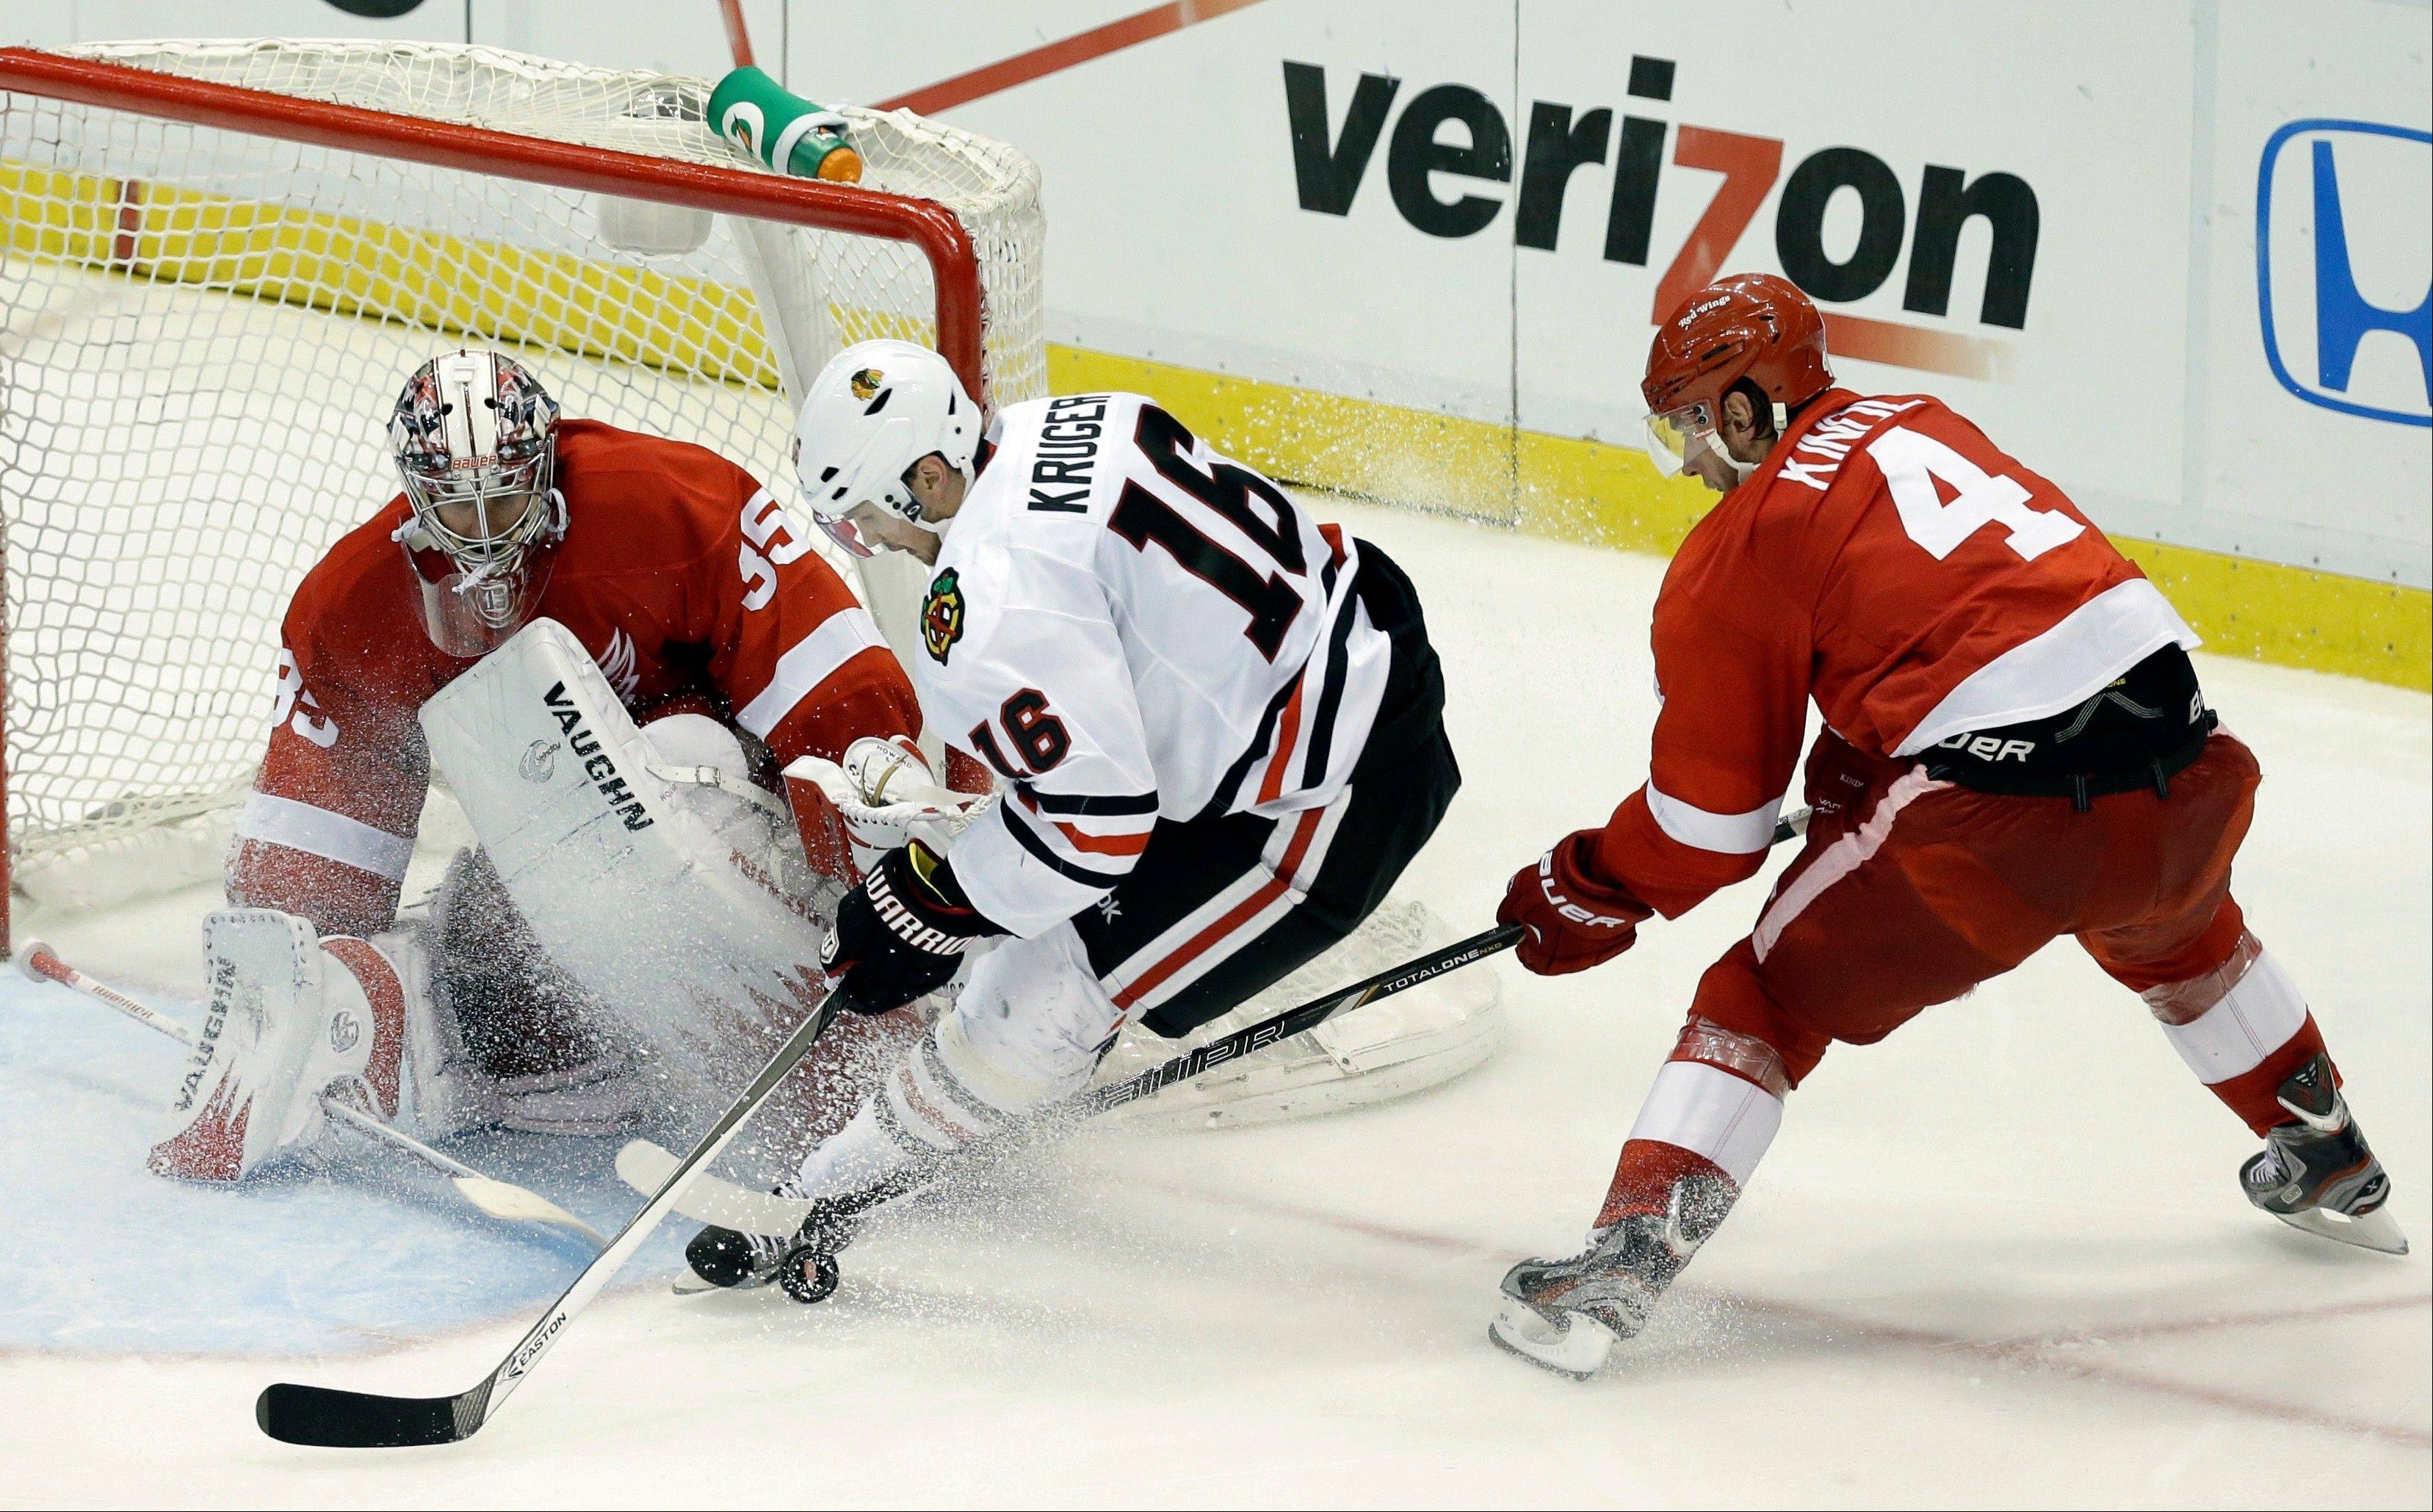 Detroit Red Wings defenseman Jakub Kindl (4), of the Czech Republic, defends against Chicago Blackhawks center Marcus Kruger (16), of Sweden, in front of Detroit Red Wings goalie Jimmy Howard (35) during the third period.